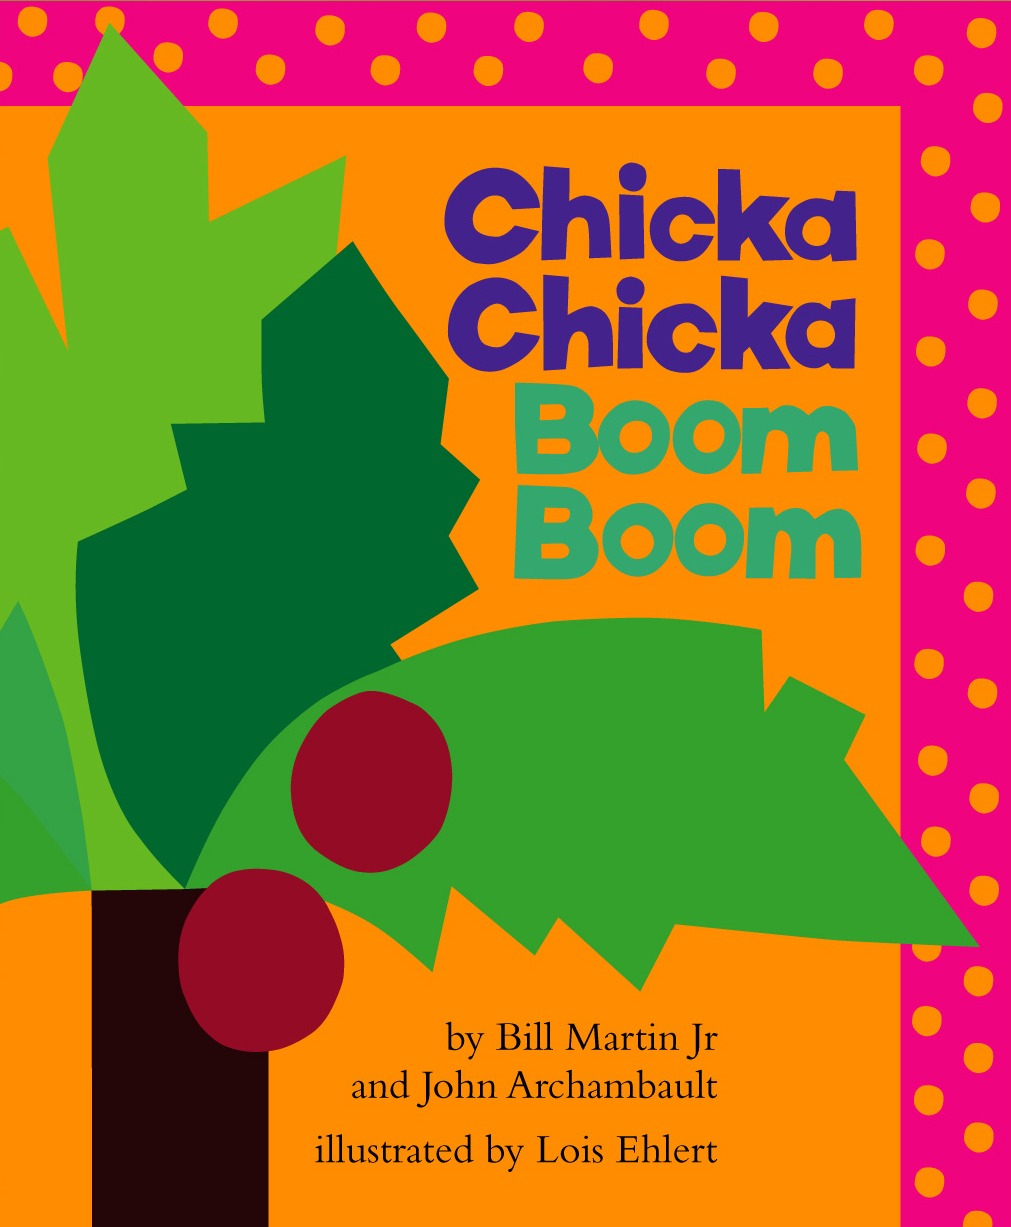 Chicka Chicka Boom Boom, by Bill Martin Jr. and John Archambault, illustrations by Lois Ehlert.                                                                                                                            Letters (literally) come to life in this alphabet book about a risky climb up a coconut tree.                                                                                                                            Buy now: Chicka Chicka Boom Boom